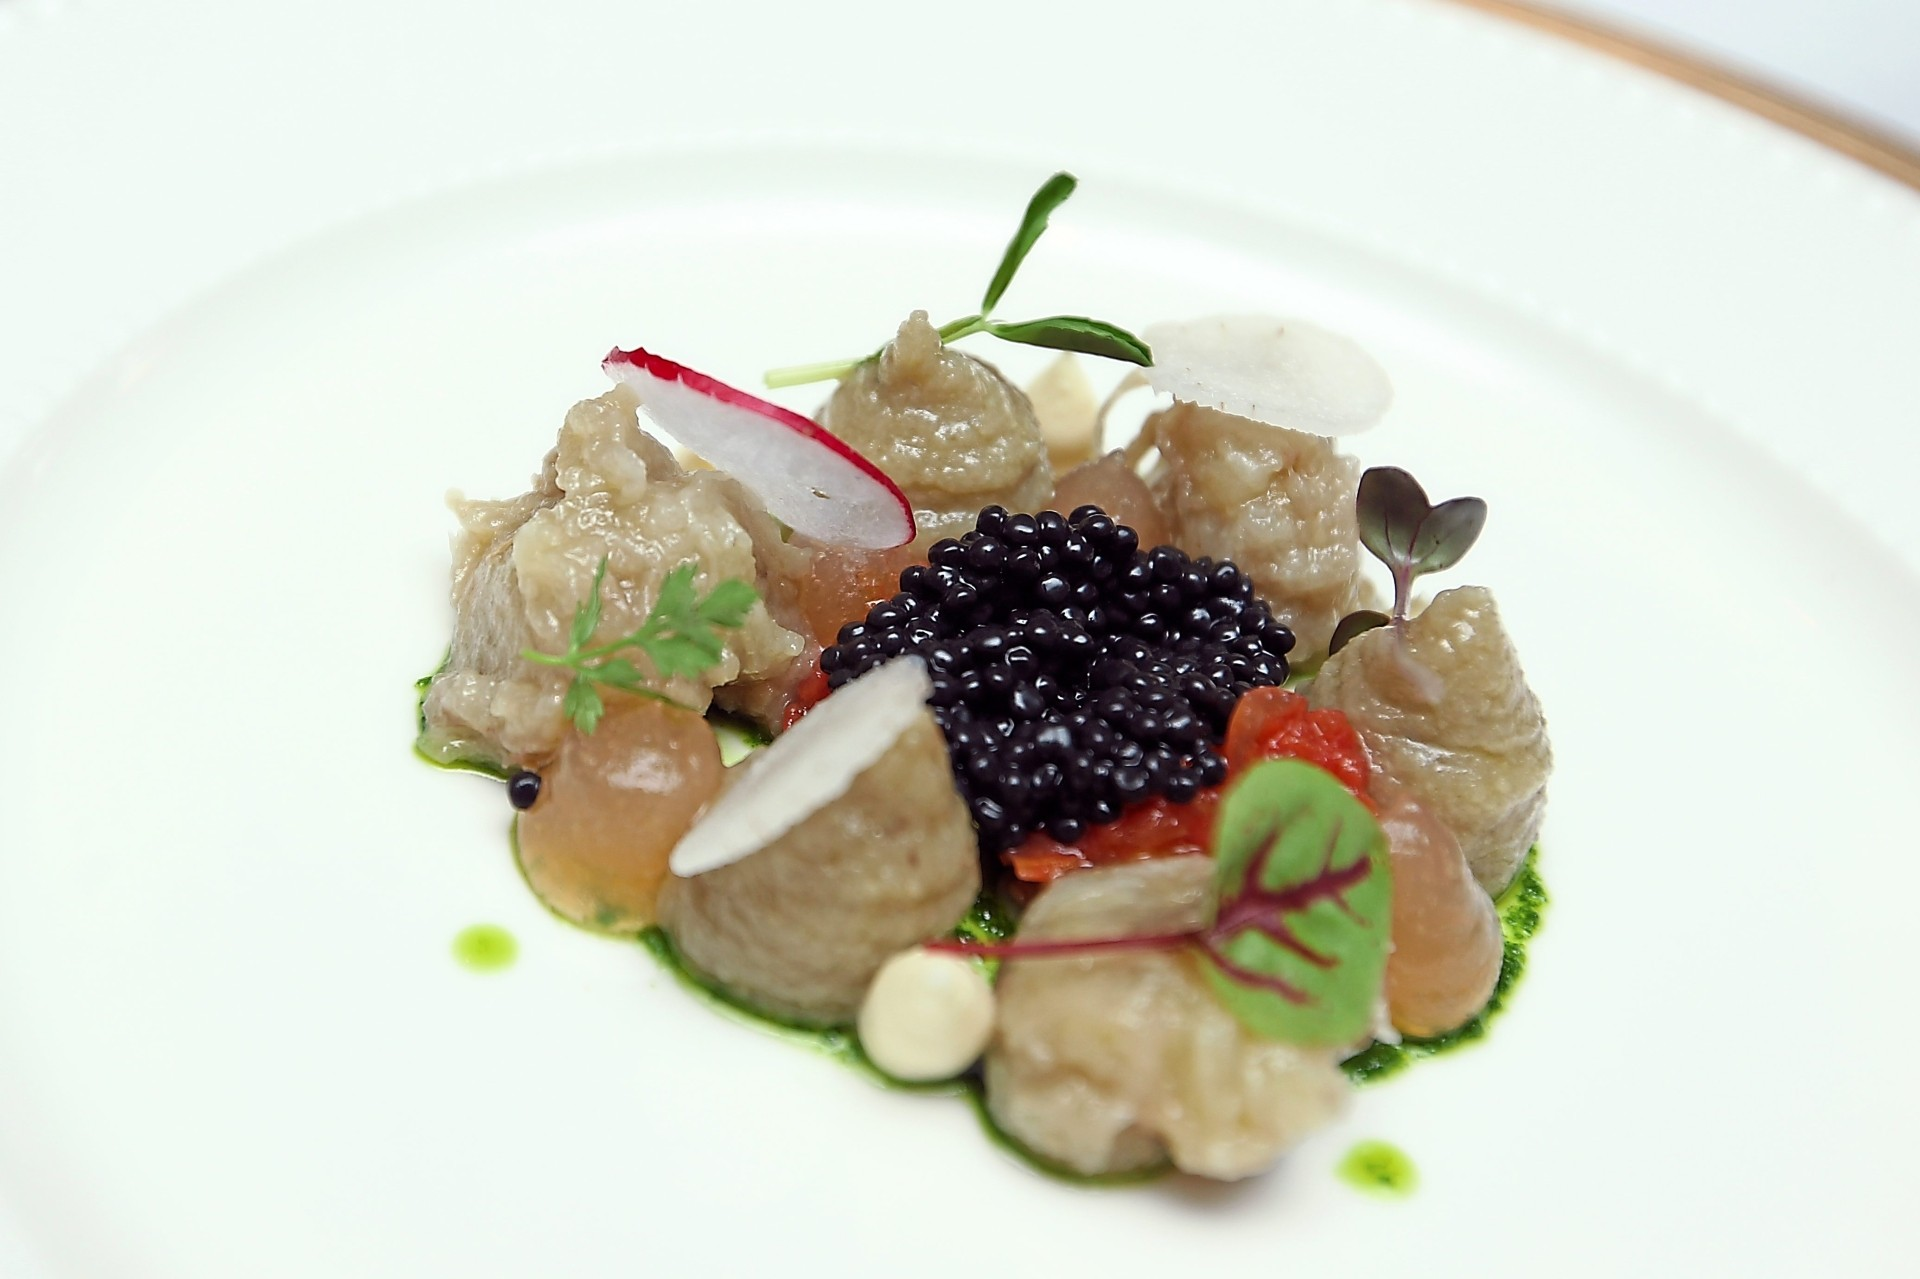 Poached nasu garnished with avruga caviar and drops of grape juice jelly comes as a starter.